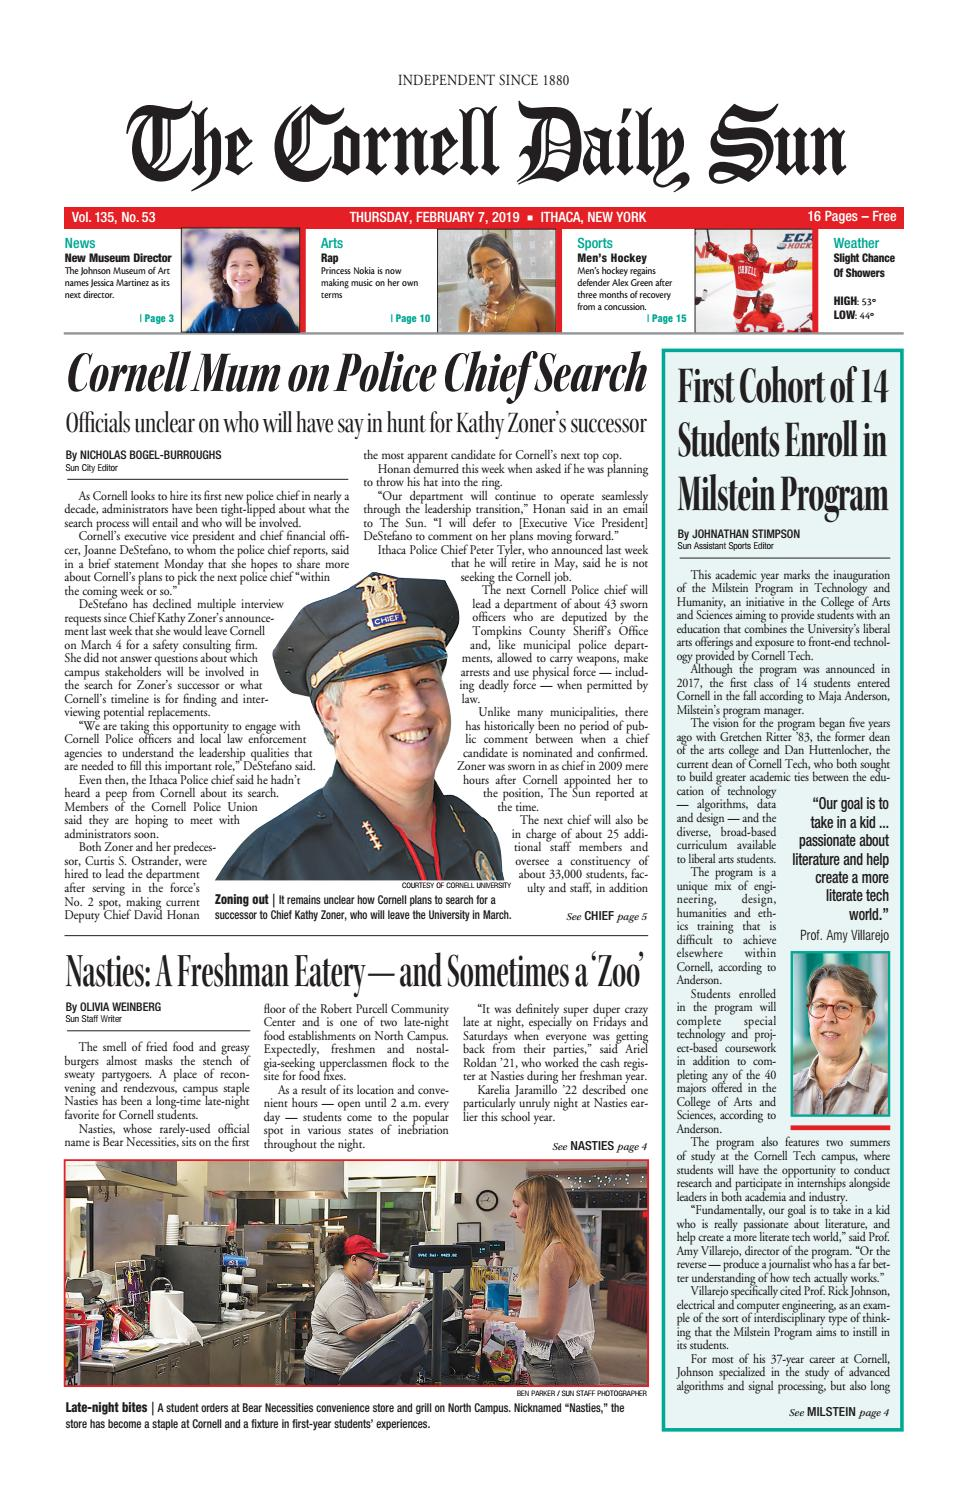 11ca6c7e528b 02-07-19 entire issue hi res by The Cornell Daily Sun - issuu